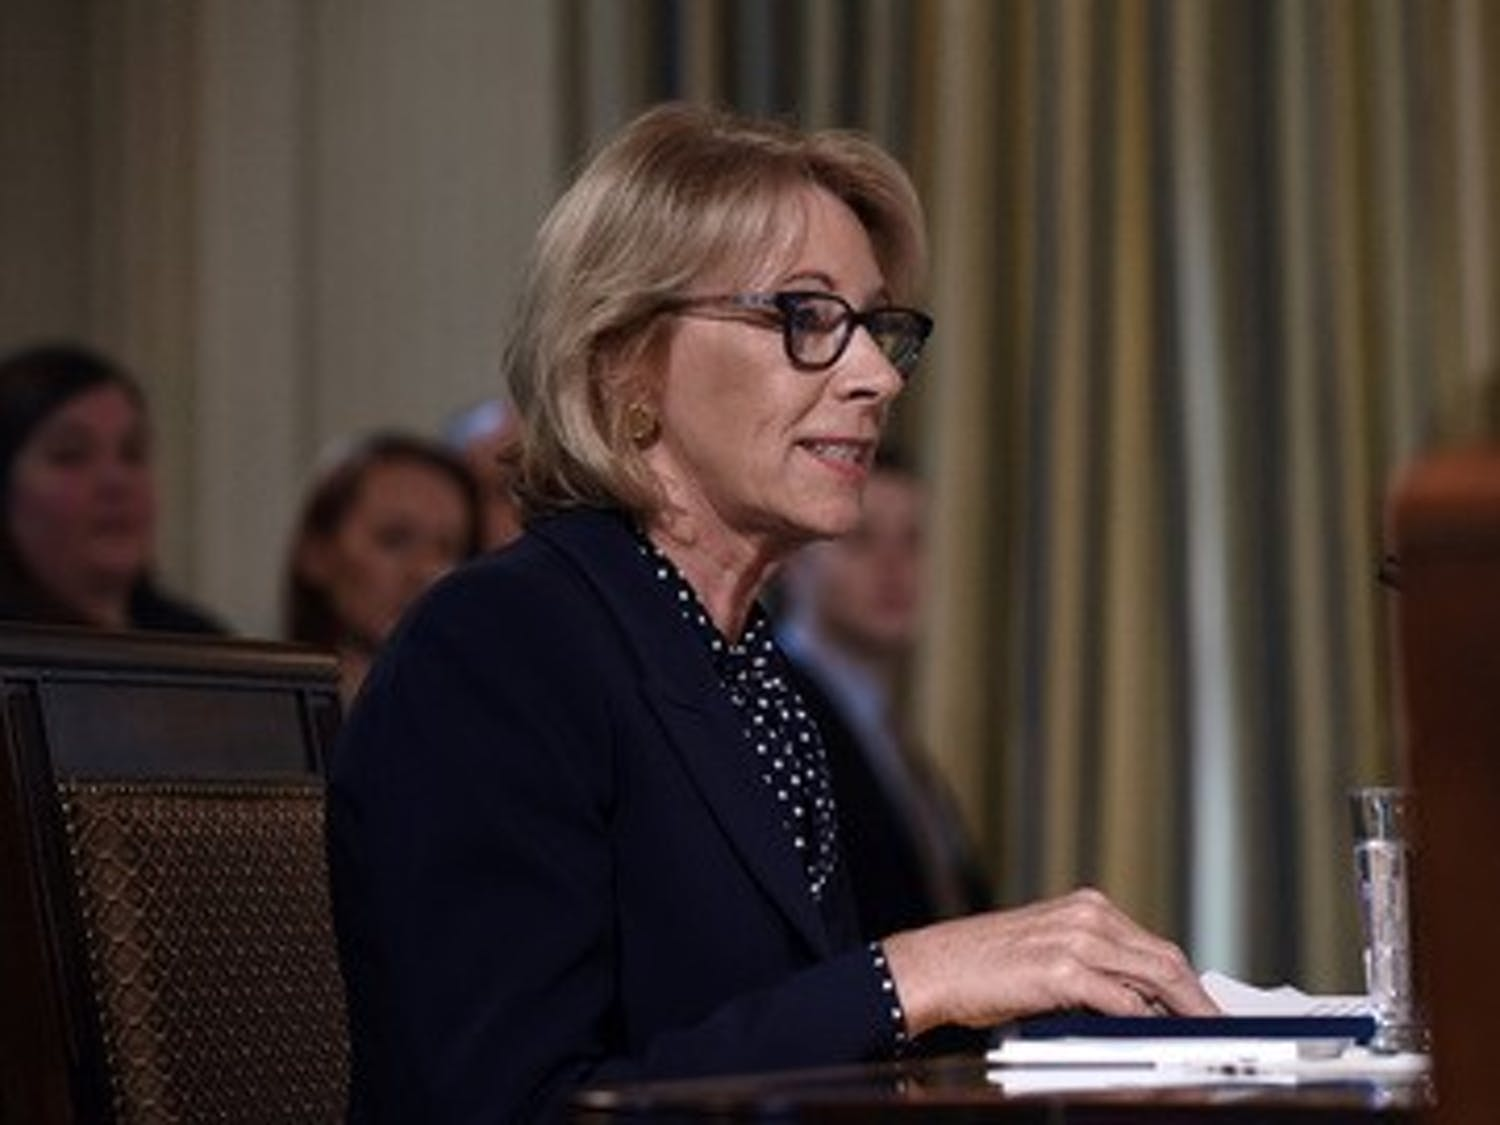 Education Secretary Betsy DeVos speaks during an Interagency meeting to discuss youth programs throughout each of the member agencies in the State Dining room of the White House in Washington, D.C., U.S., on Monday, March 18, 2019.(Olivier Douliery/ Abaca Press/TNS)